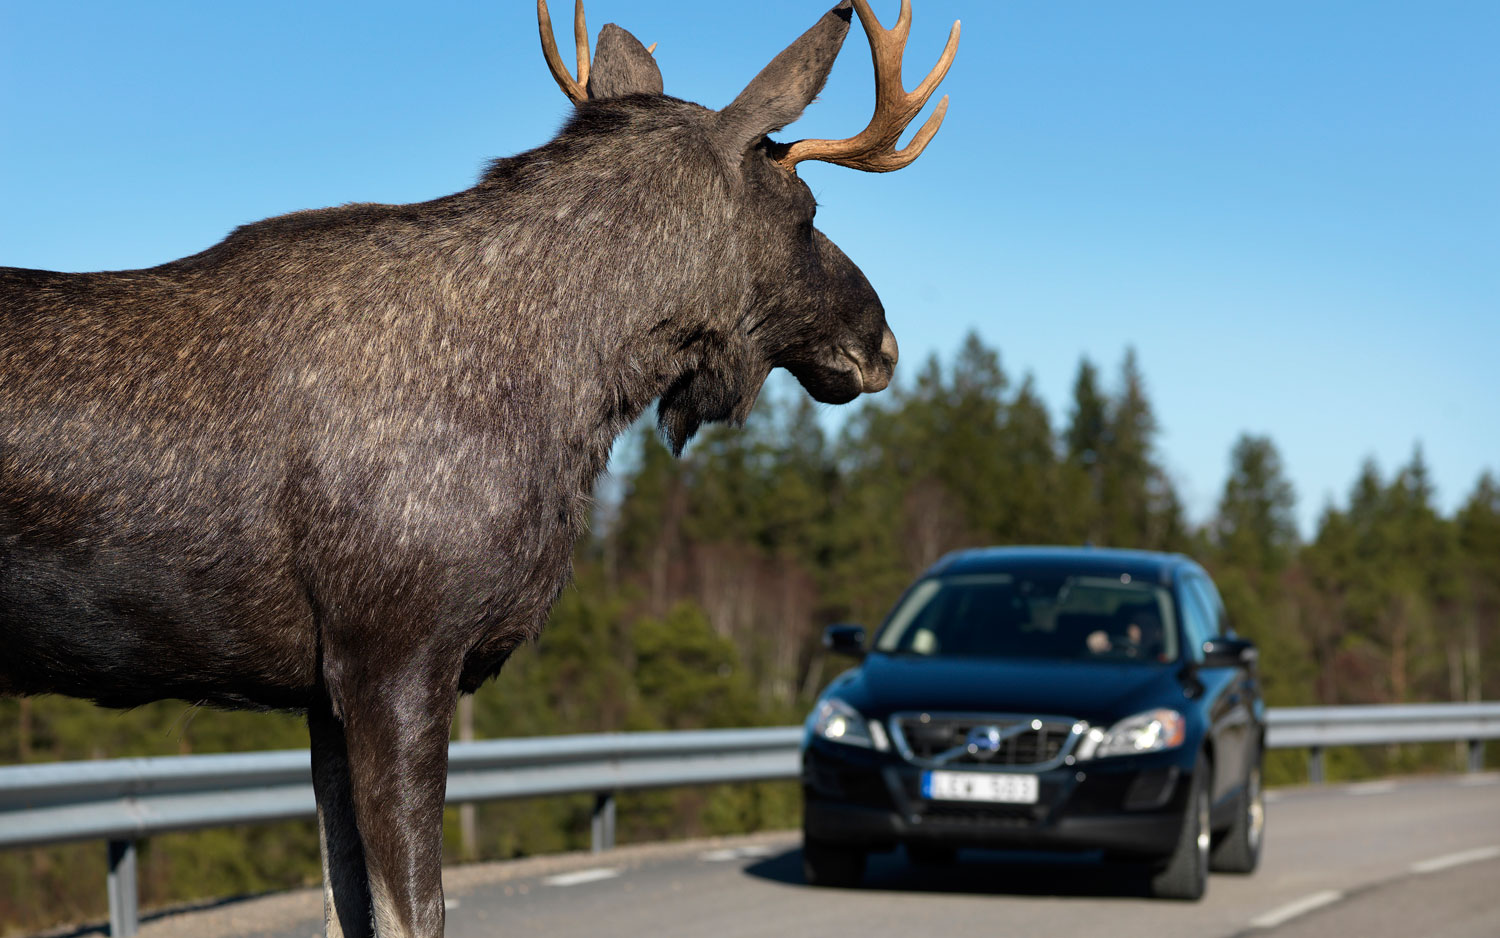 Volvo Wild Animal Detection Testing With Moose In Road1